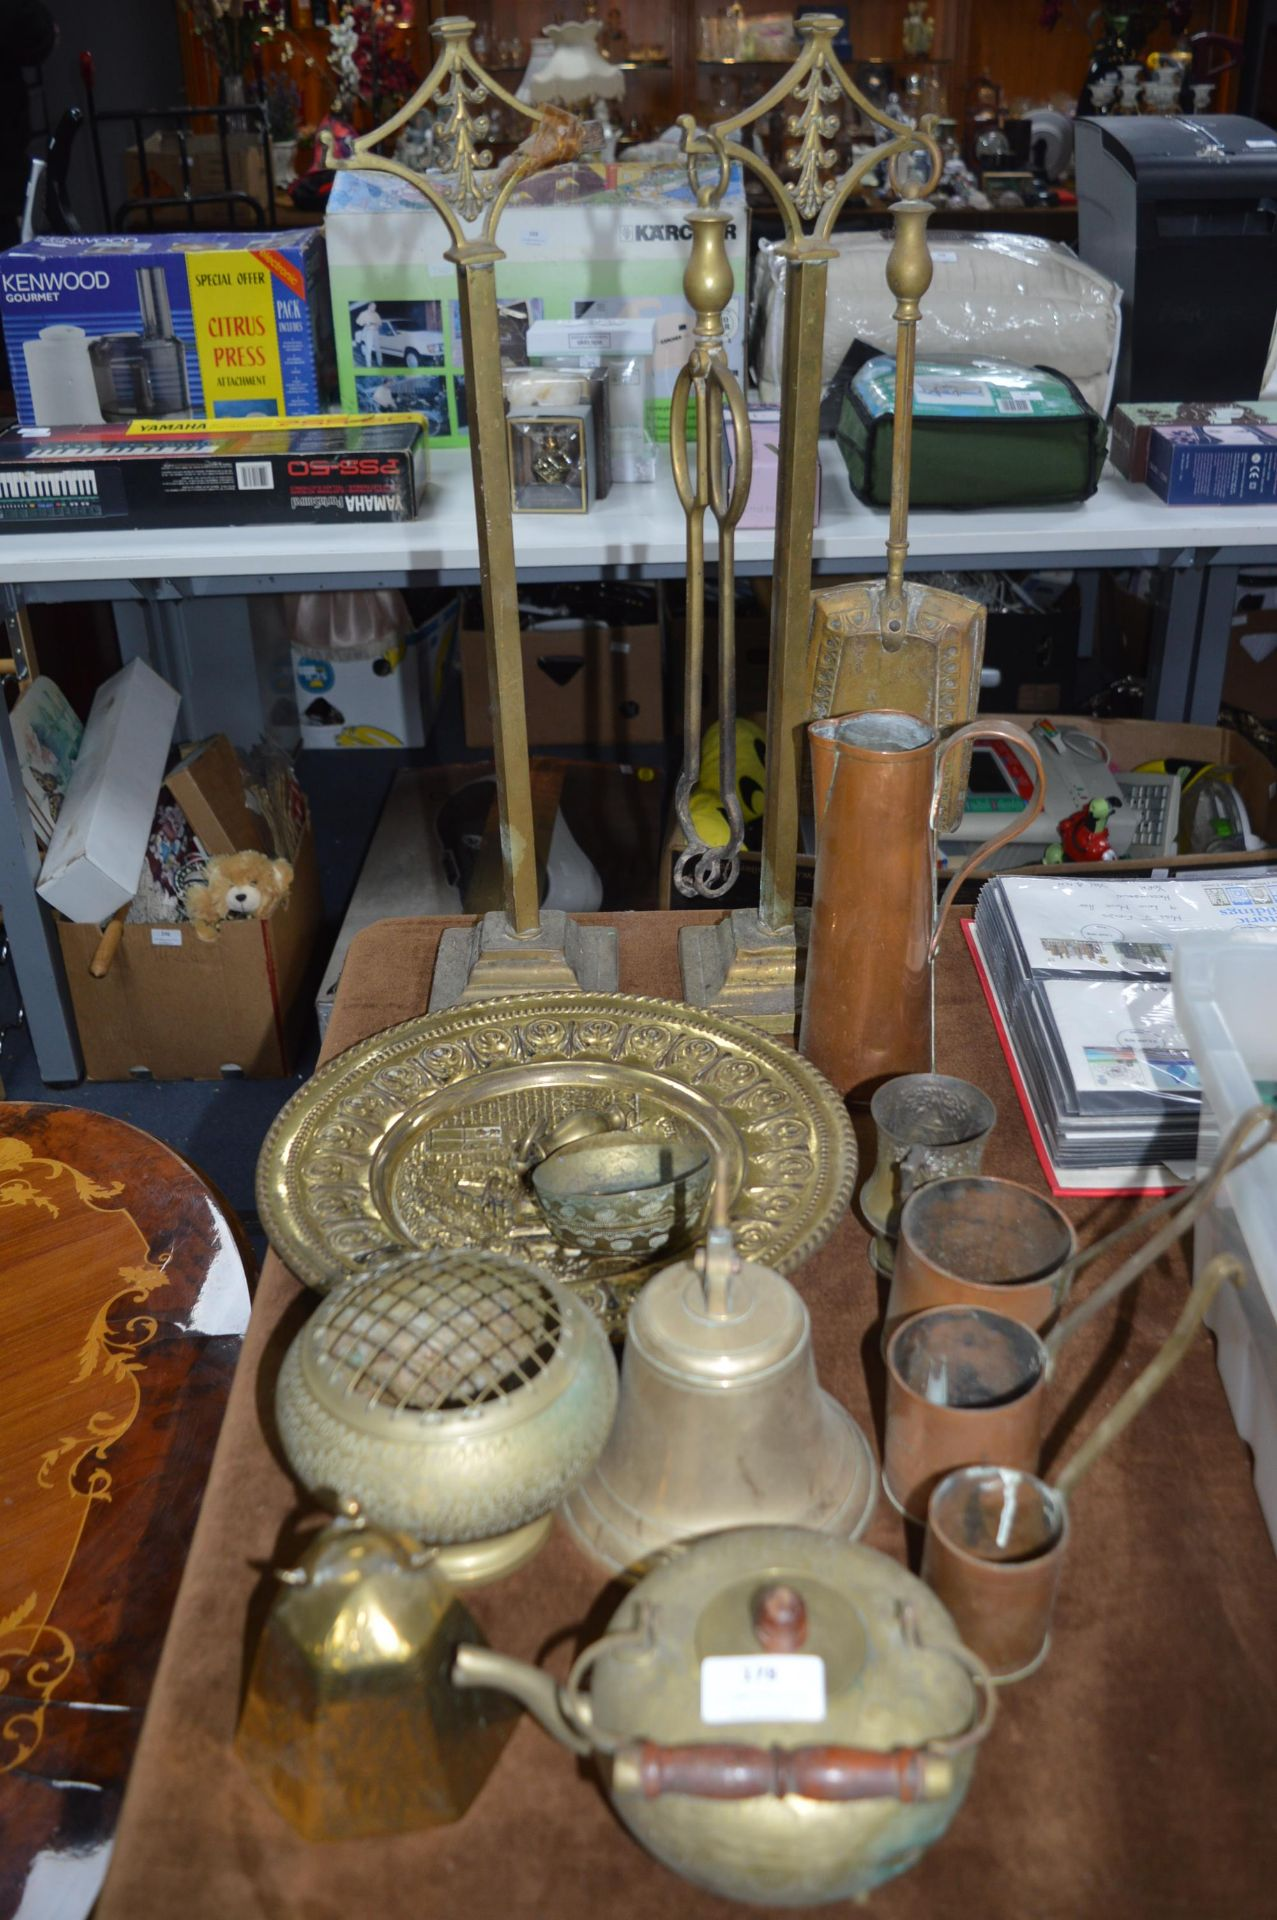 Lot 178 - Copper & Brass Ware Including Trays, Measuring Jug